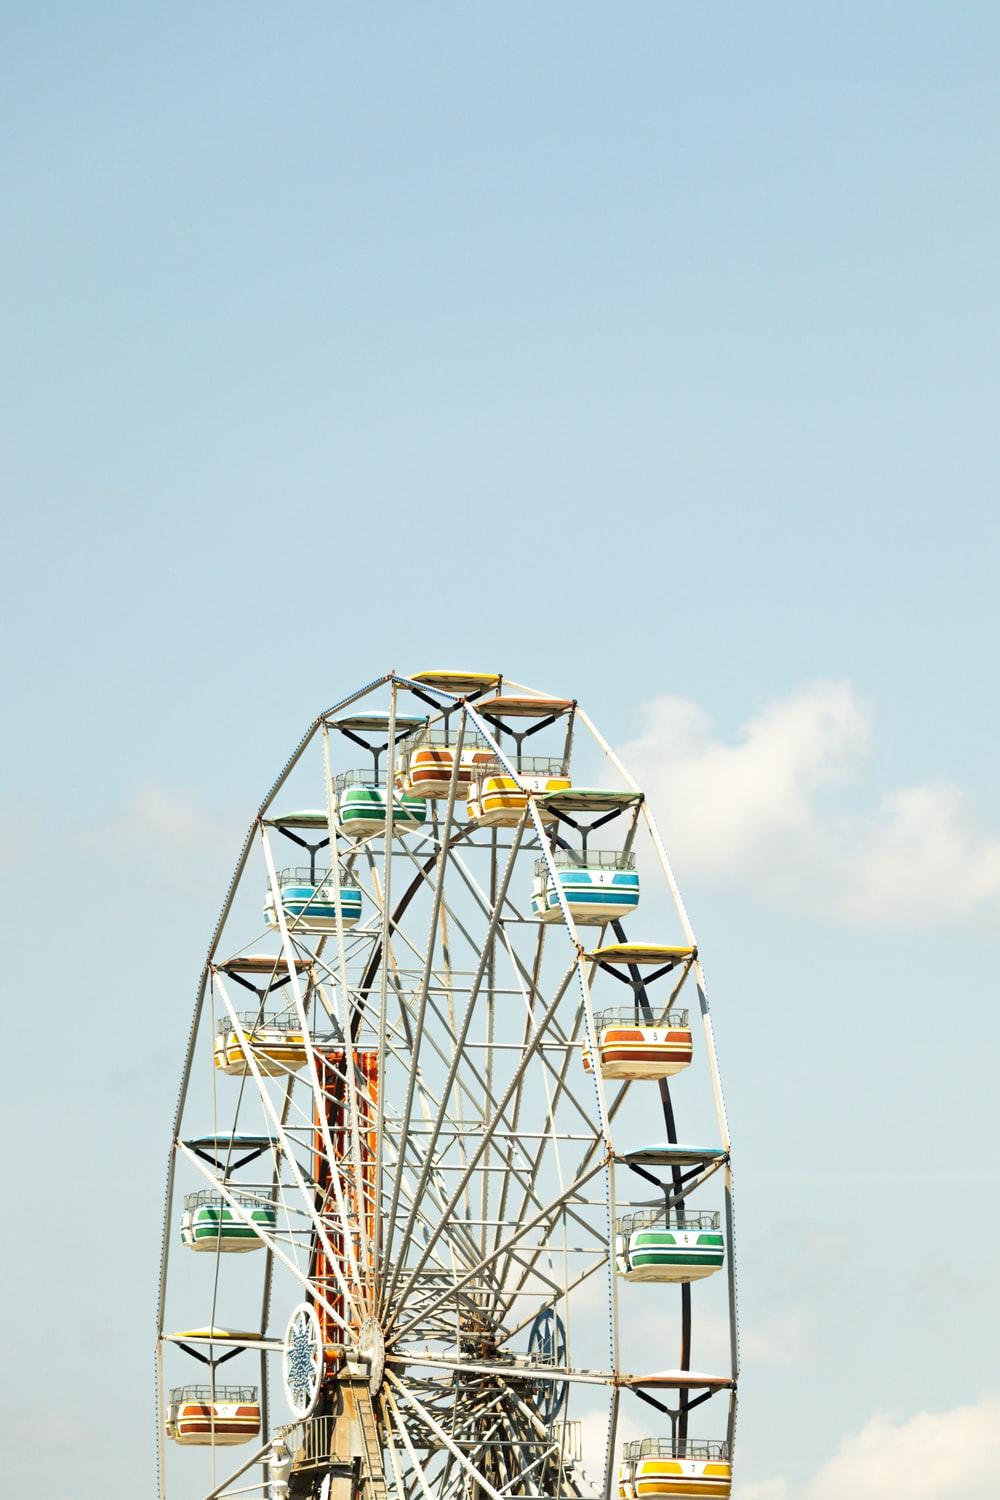 white and red ferris wheel under blue sky during daytime